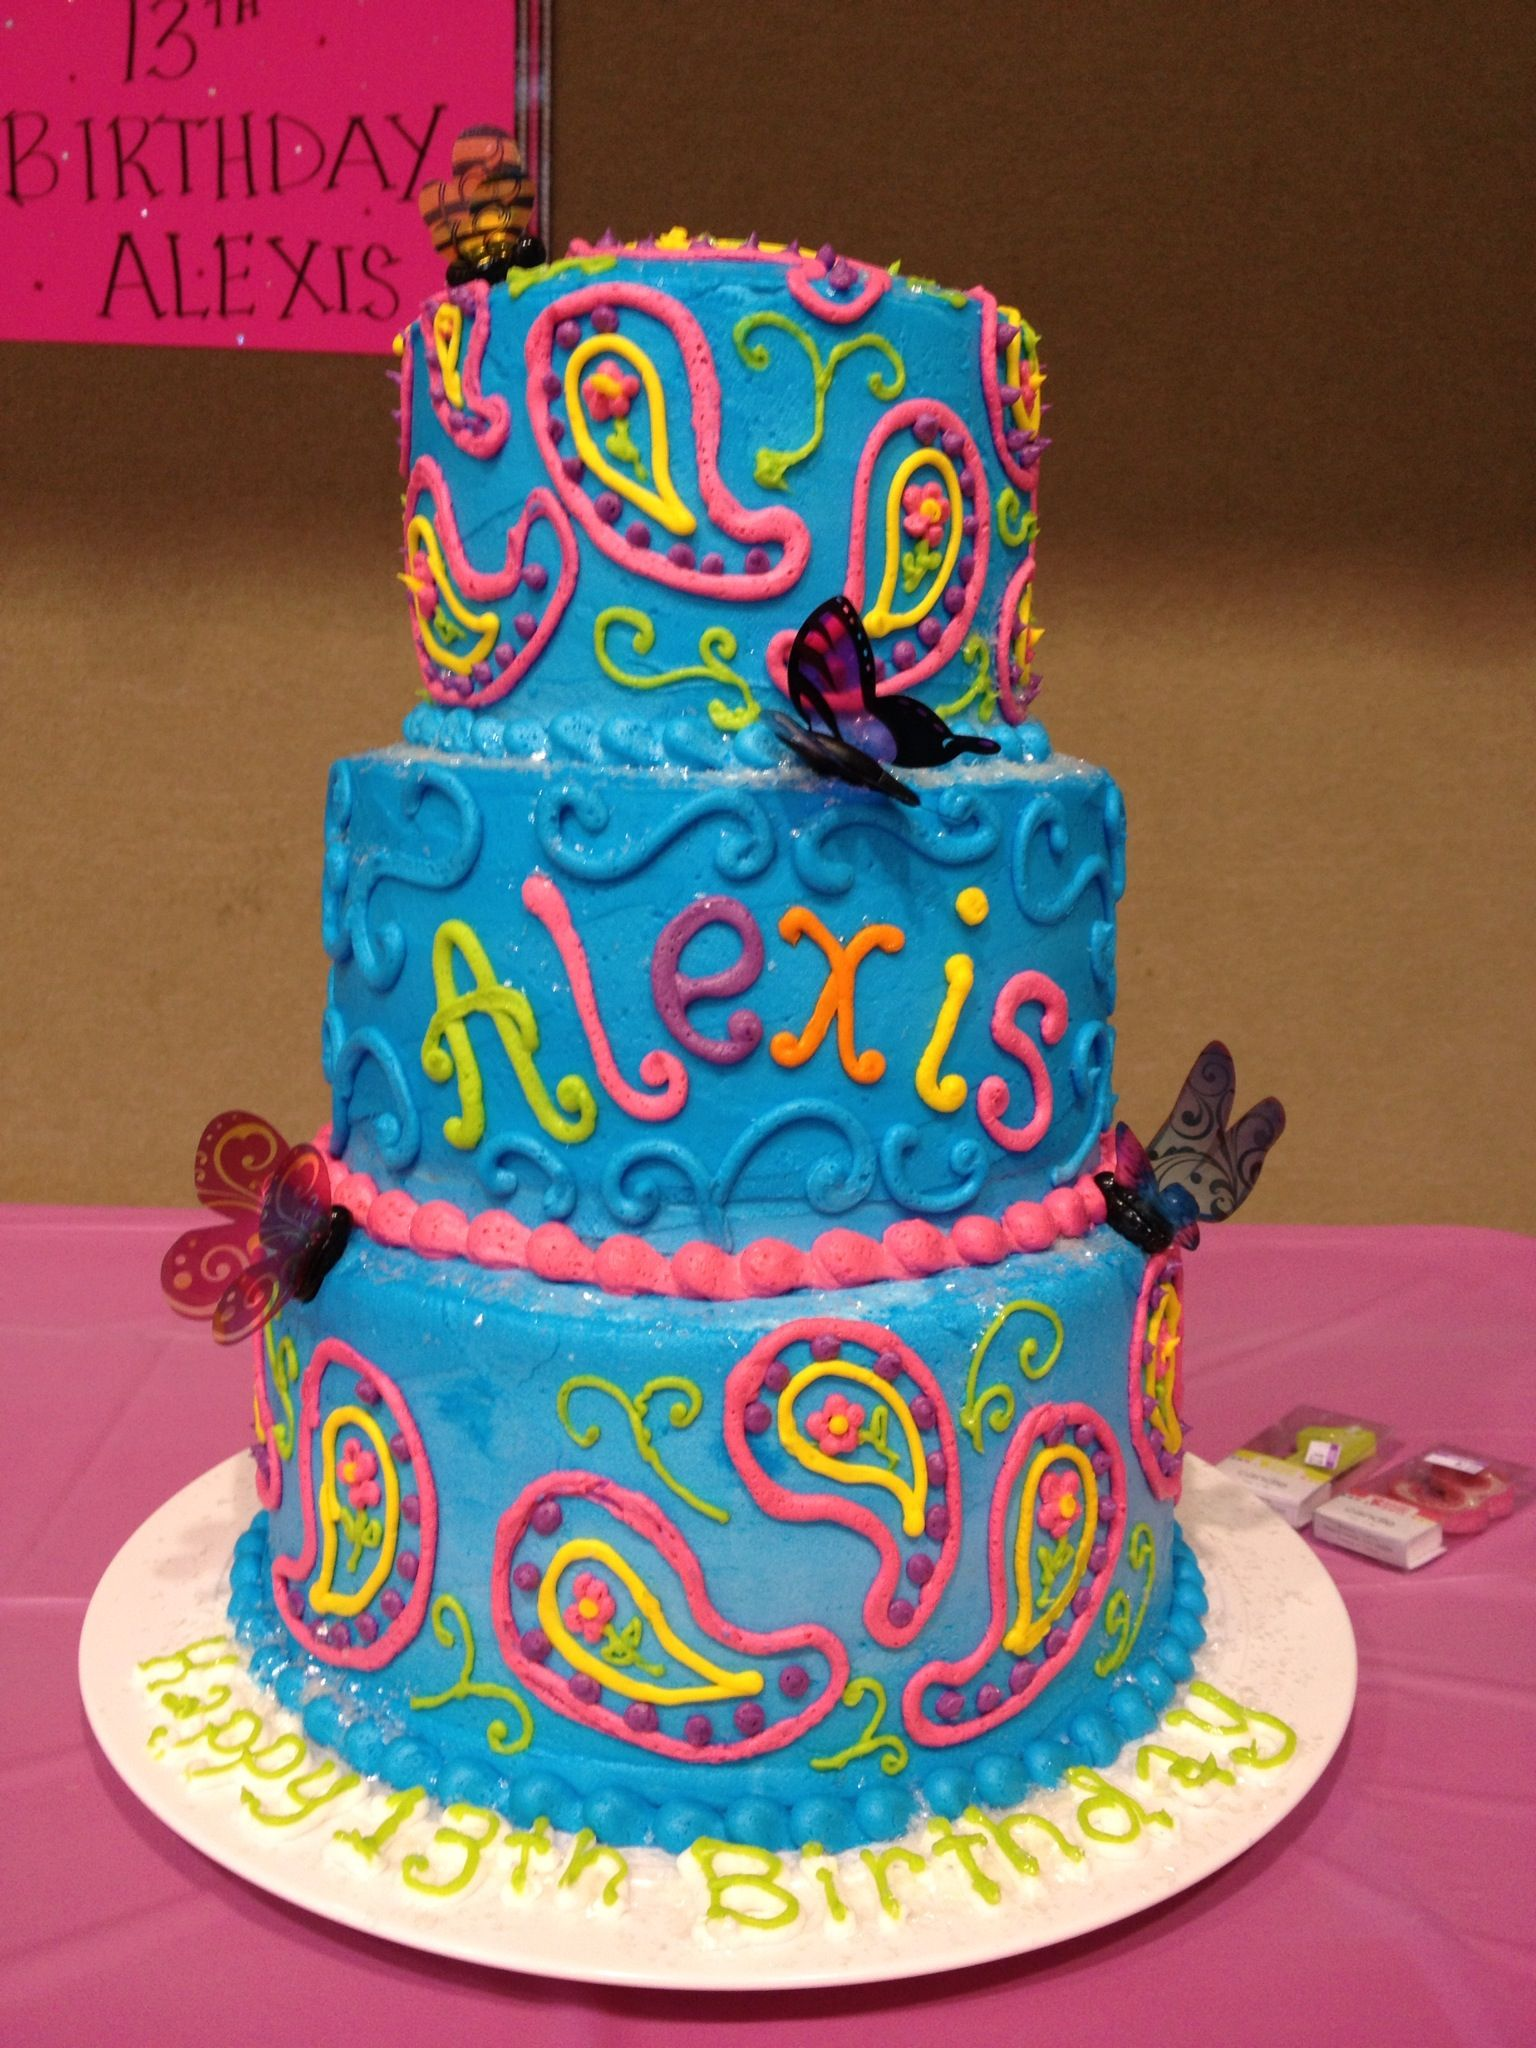 Cute Teen Birthday Cake Love Maybe I will do something like this